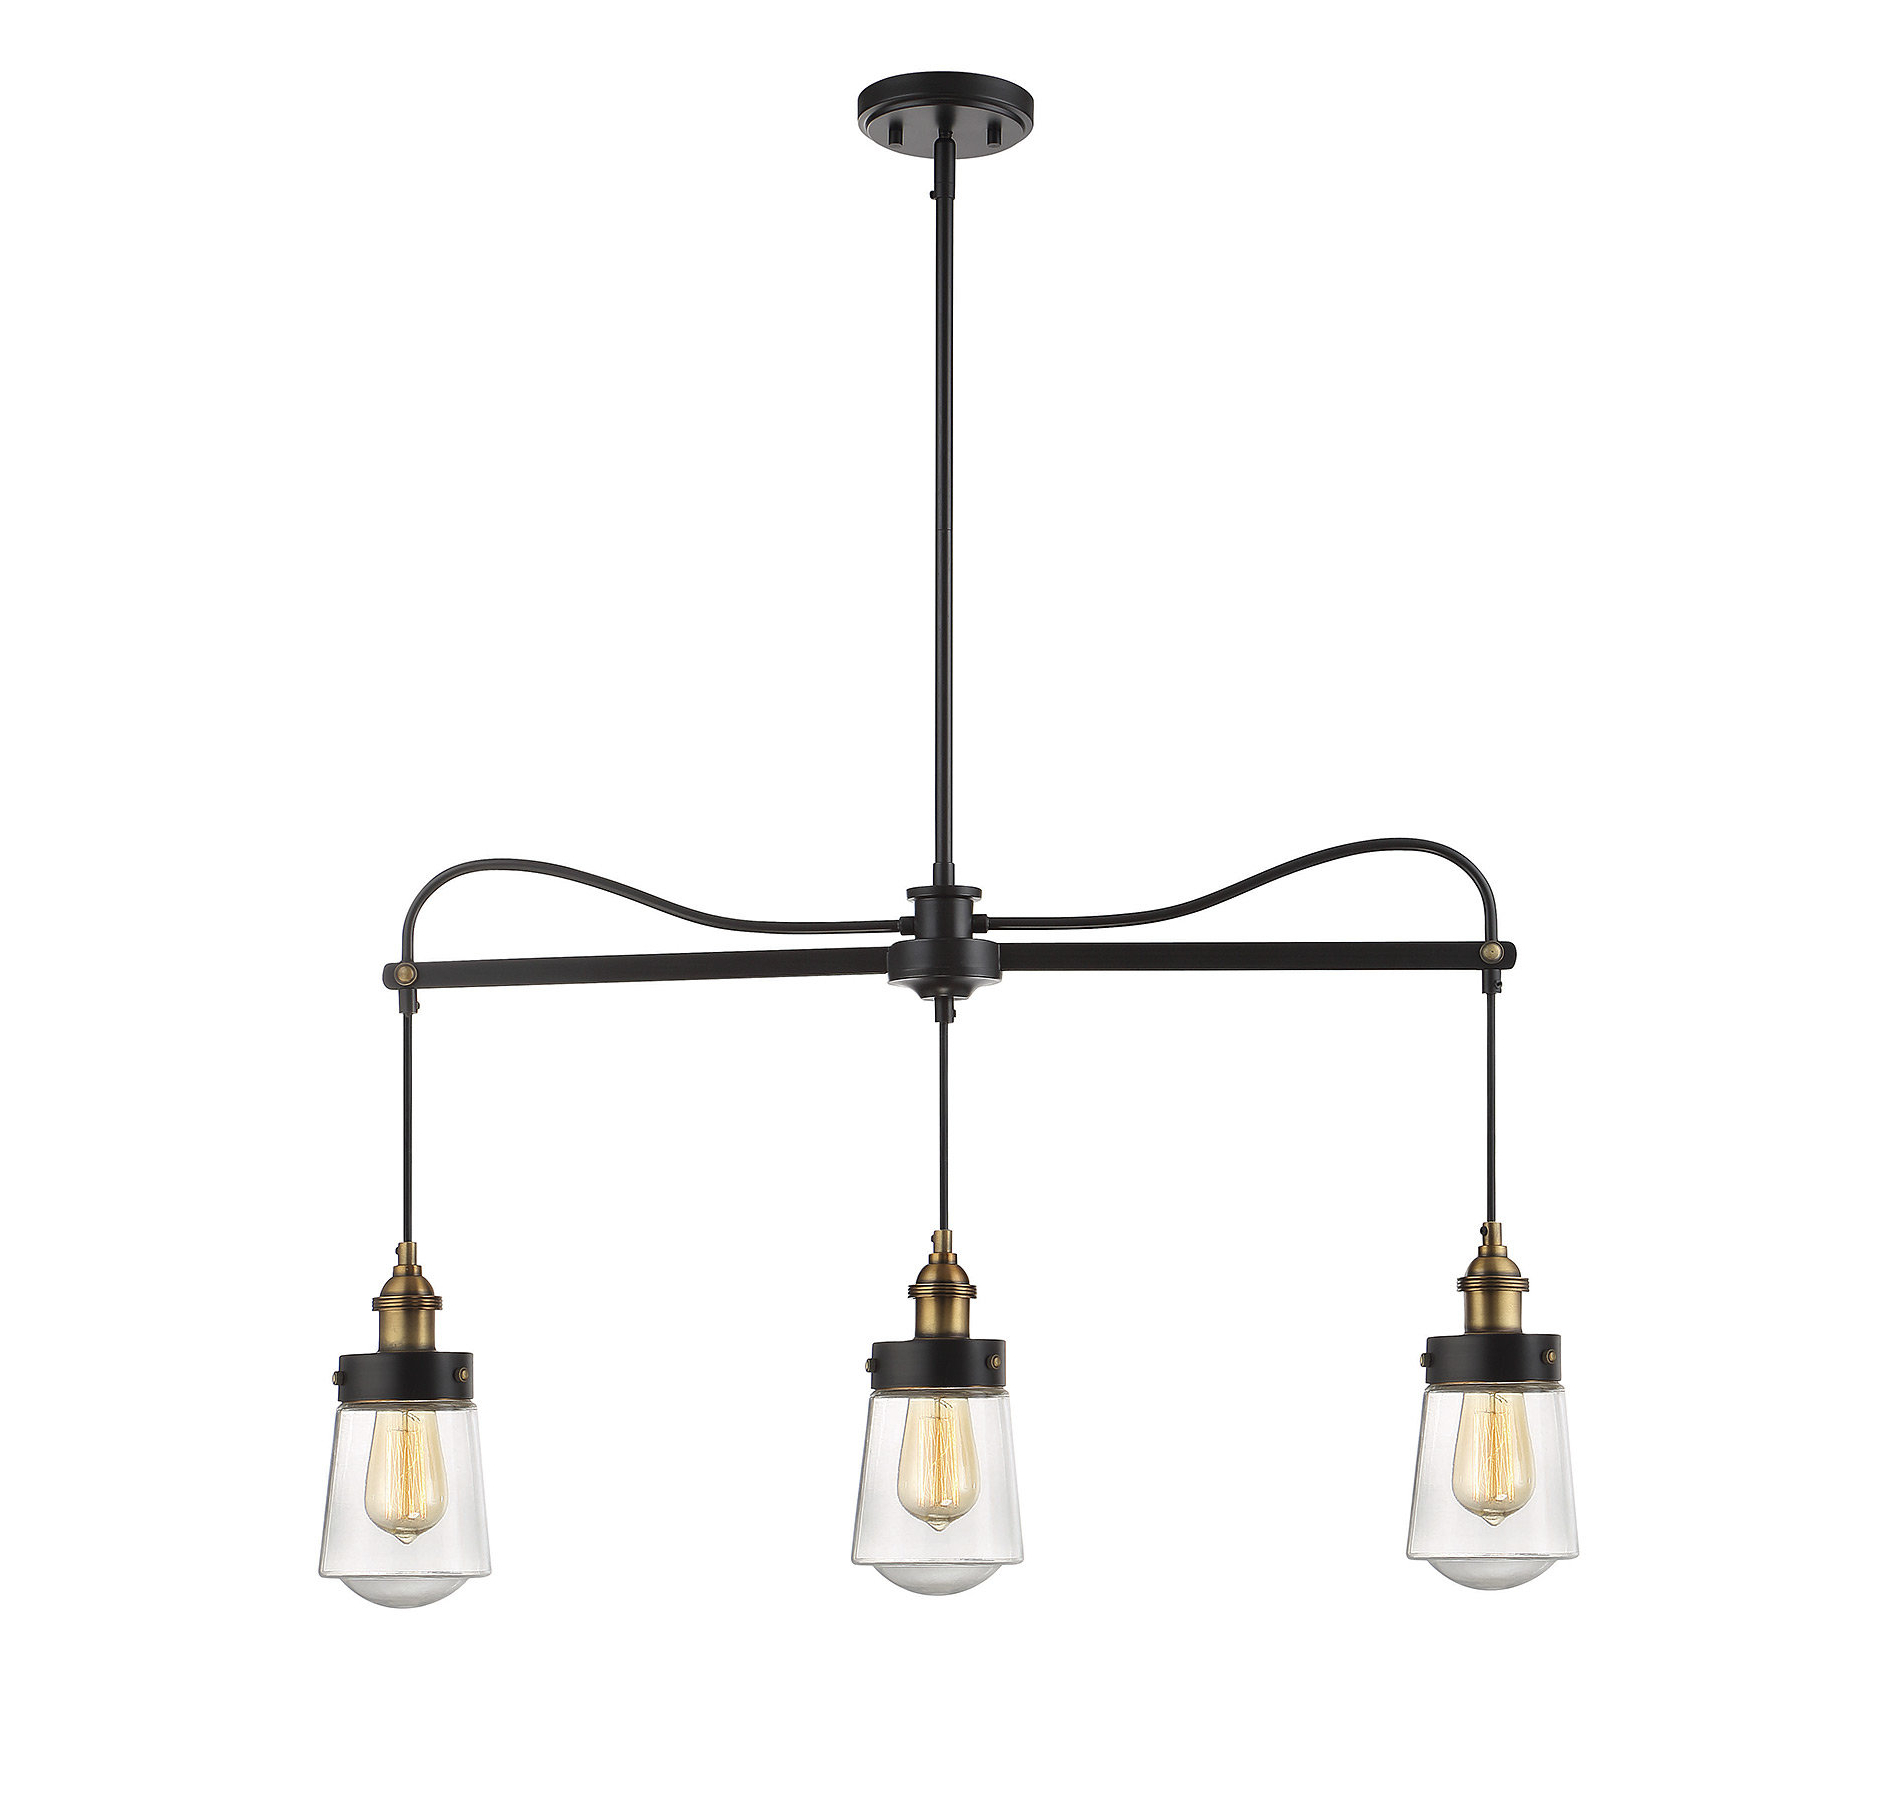 Fashionable Martinique 3 Light Kitchen Island Dome Pendants Regarding Gough 3 Light Kitchen Island Linear Pendant (View 7 of 20)